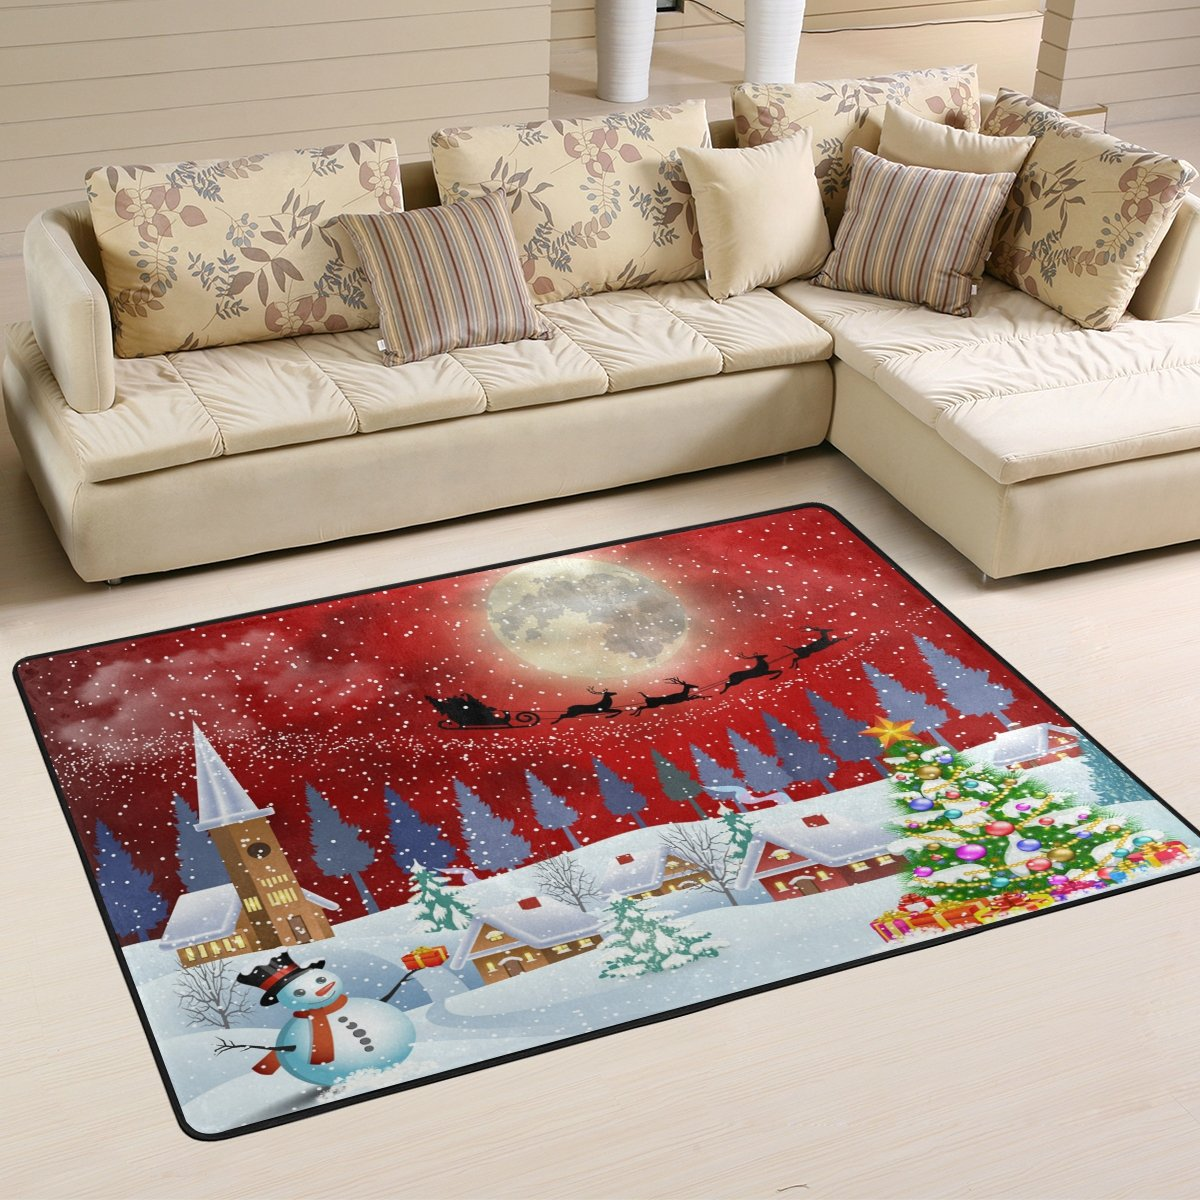 Naanle Winter Landscape Area Rug 1.8'x2.7', Christmas Snowman Tree Santa Clause Reindeer Under The Full Moon Polyester Area Rug Mat for Living Dining Dorm Room Bedroom Home Decorative